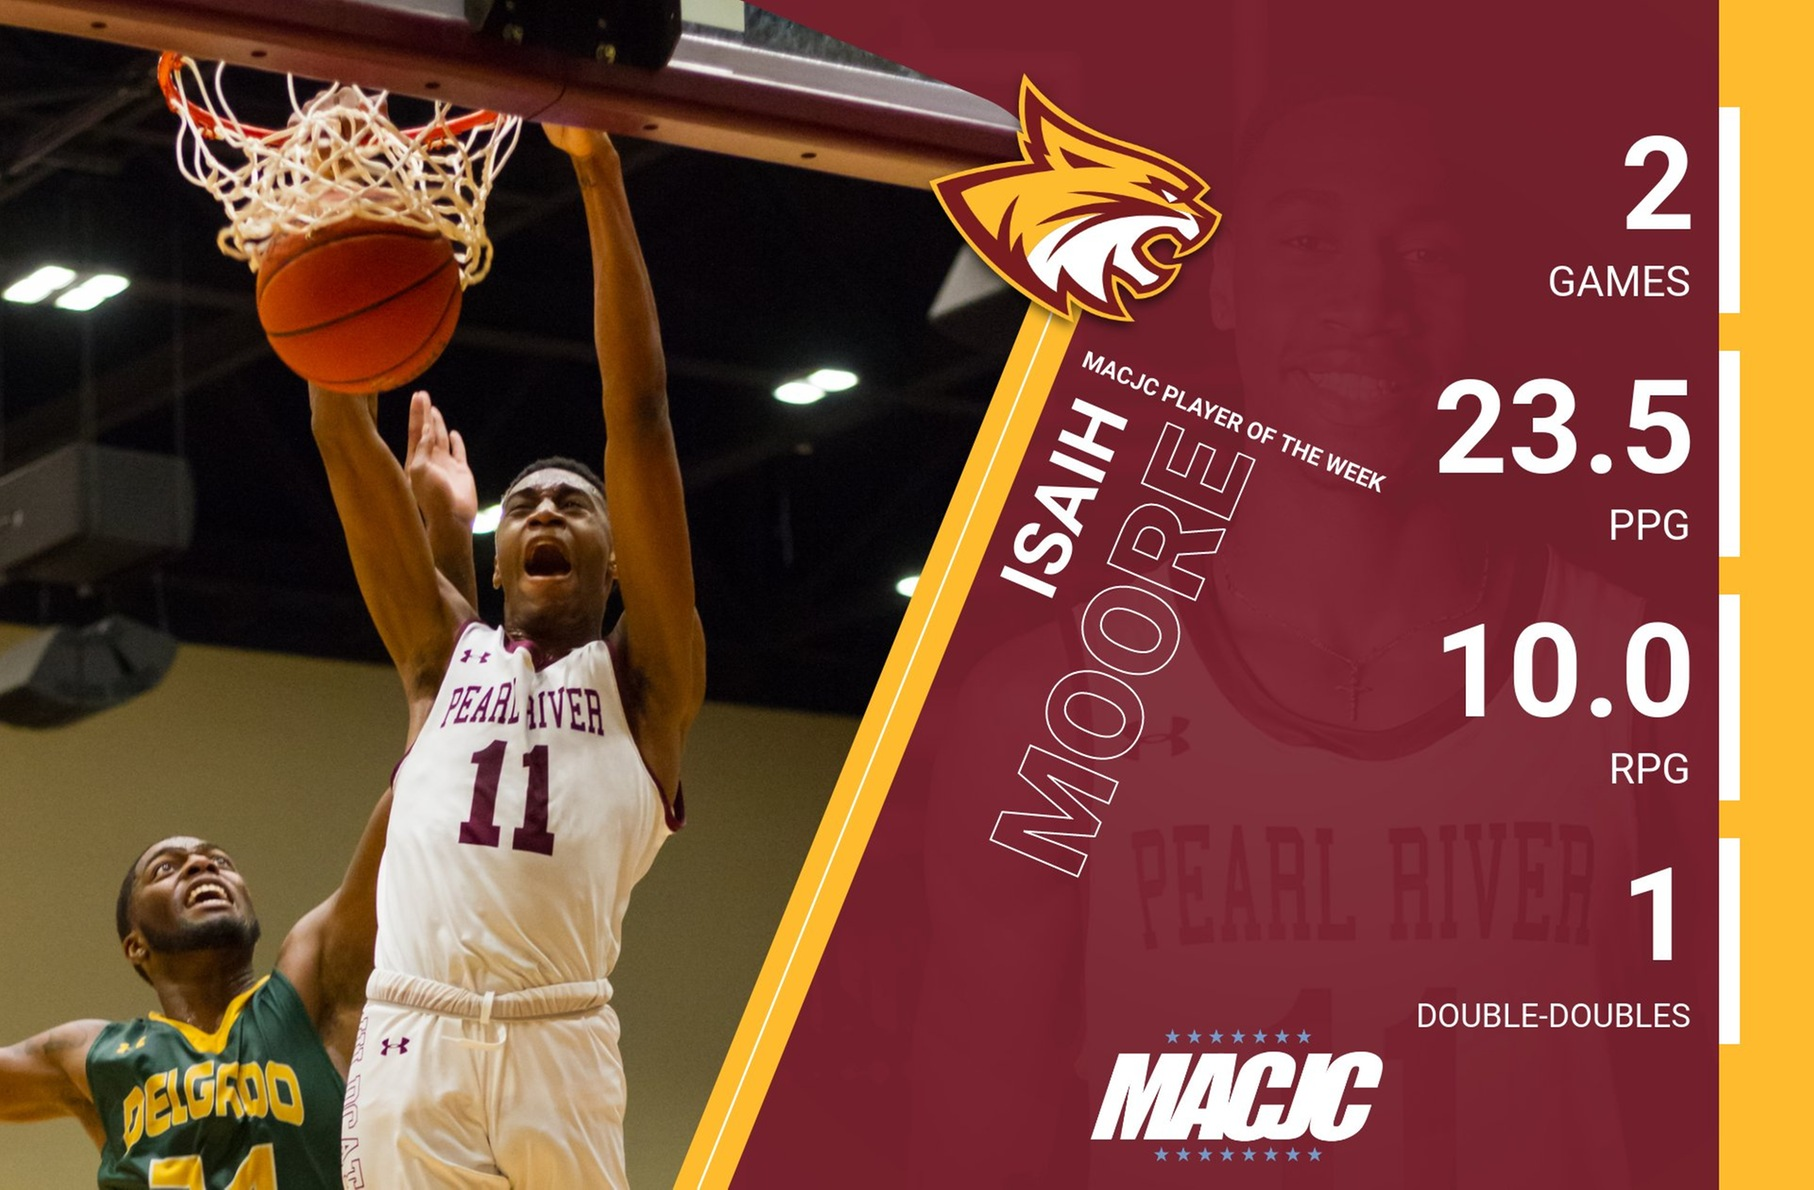 Pearl River's Isaih Moore named MACJC Player of the Week